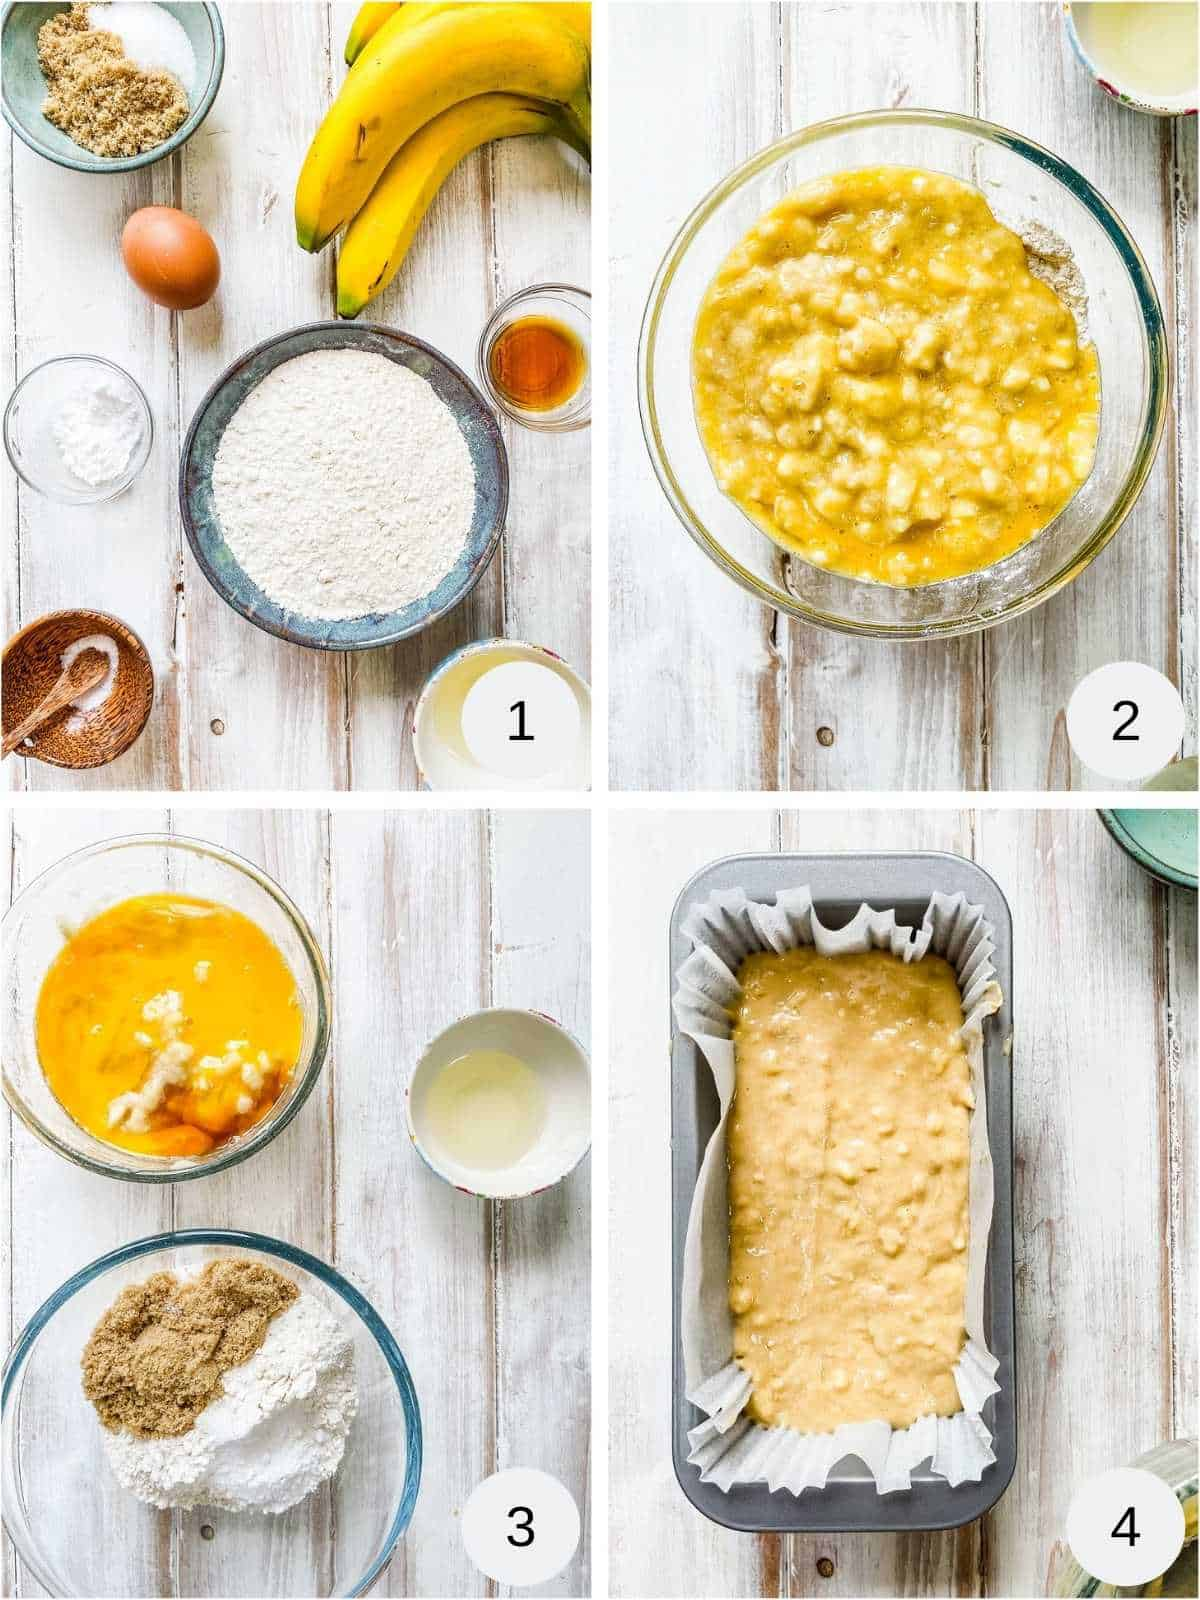 A collage of photographs of making banana bread.